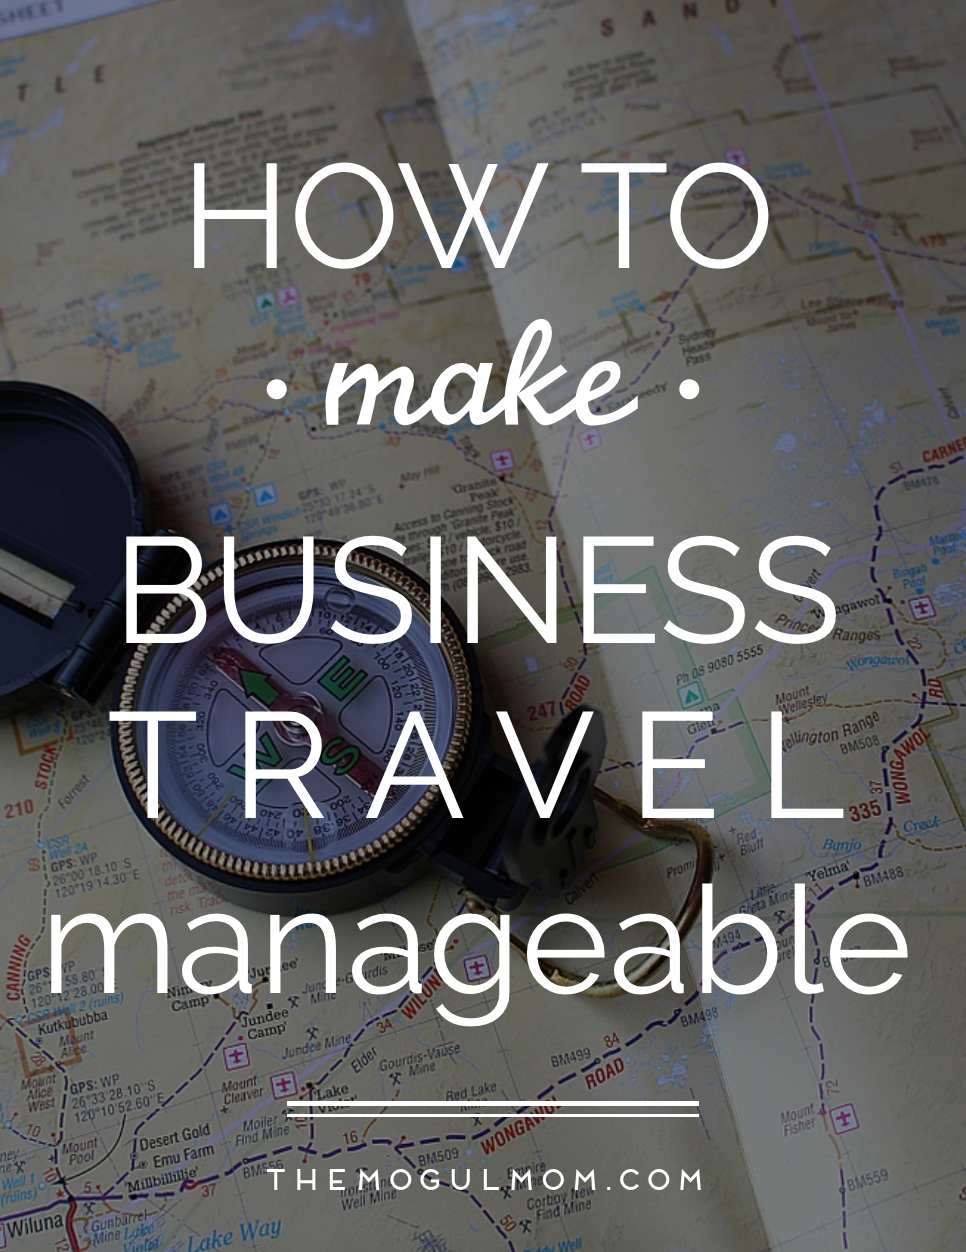 How To Make Business Travel Manageable